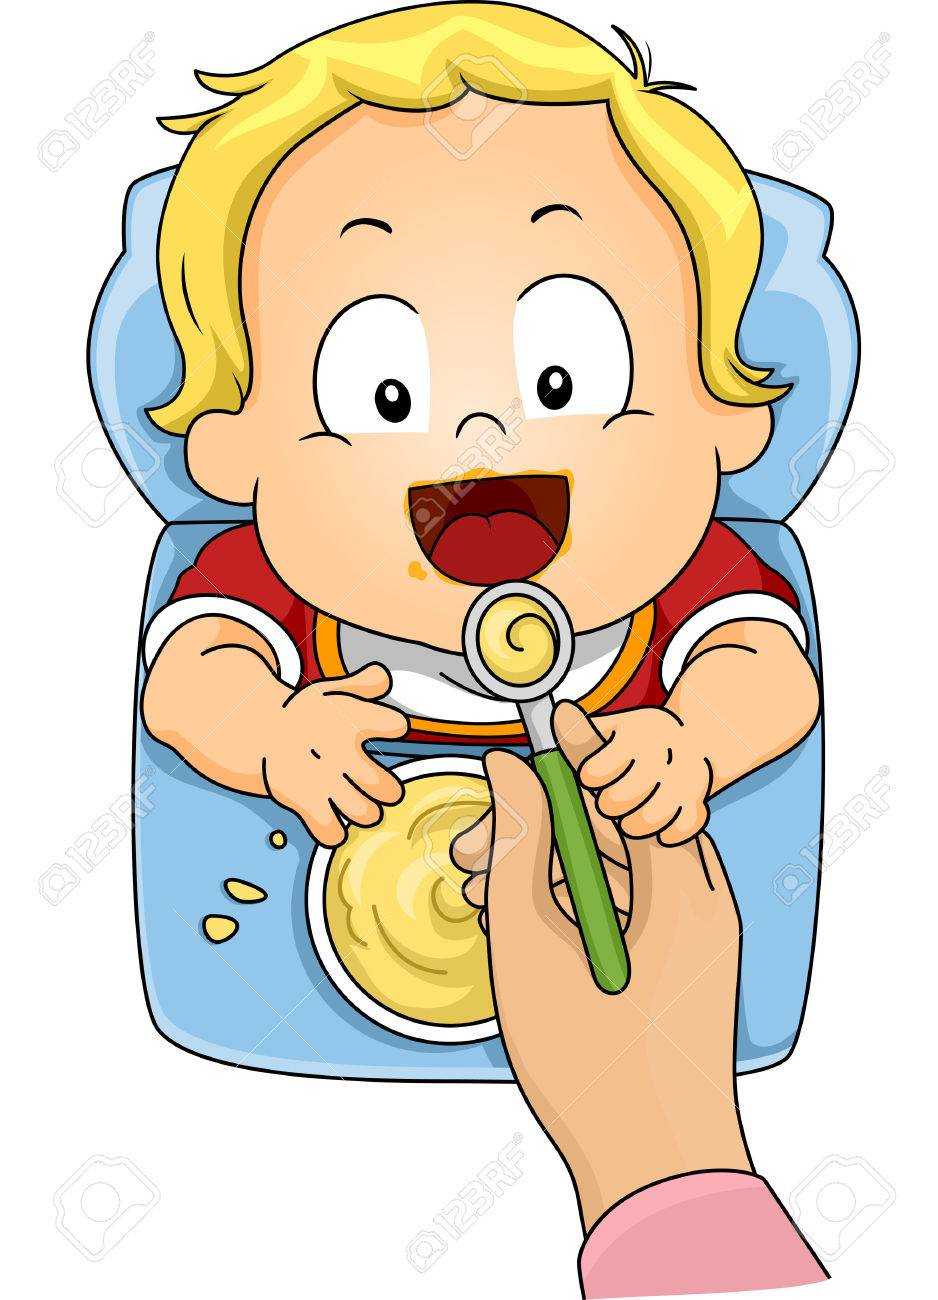 Illustration Featuring a Baby Boy Being Fed with Instant Cereal - 32986094